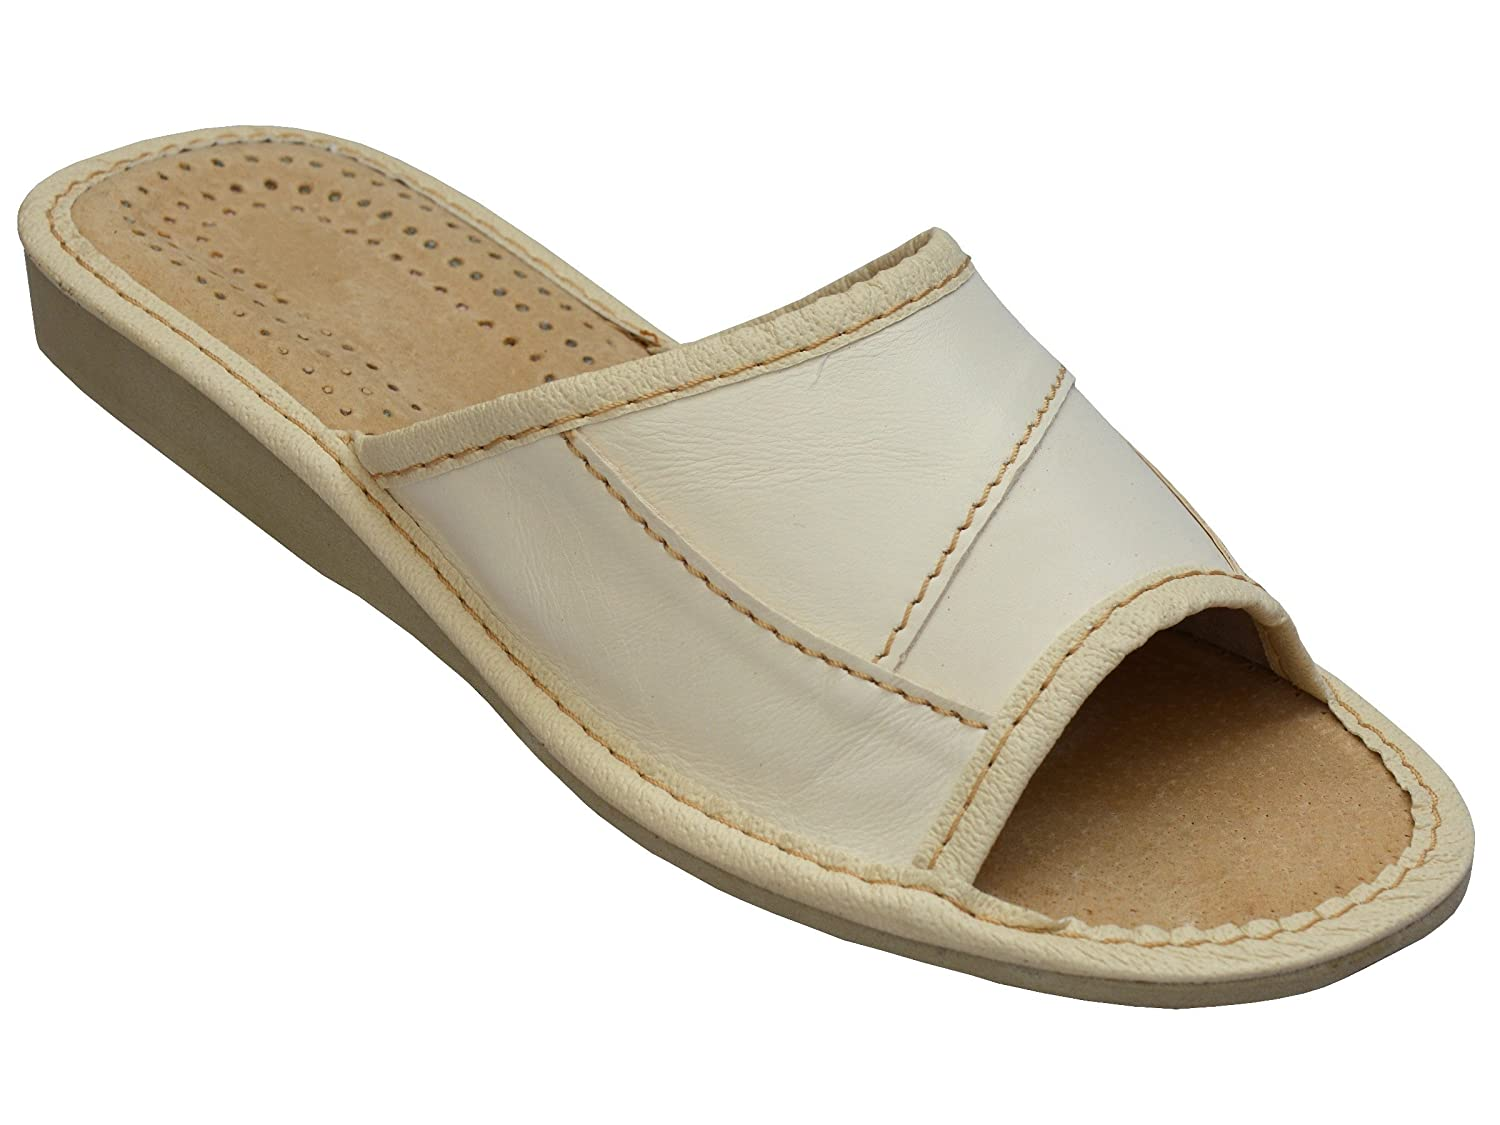 BeComfy Cuir Chaussons Beige Confort Naturel Cuir Chaussons BeComfy Pantoufles Taille 35-41 Beige 61e555b - deadsea.space